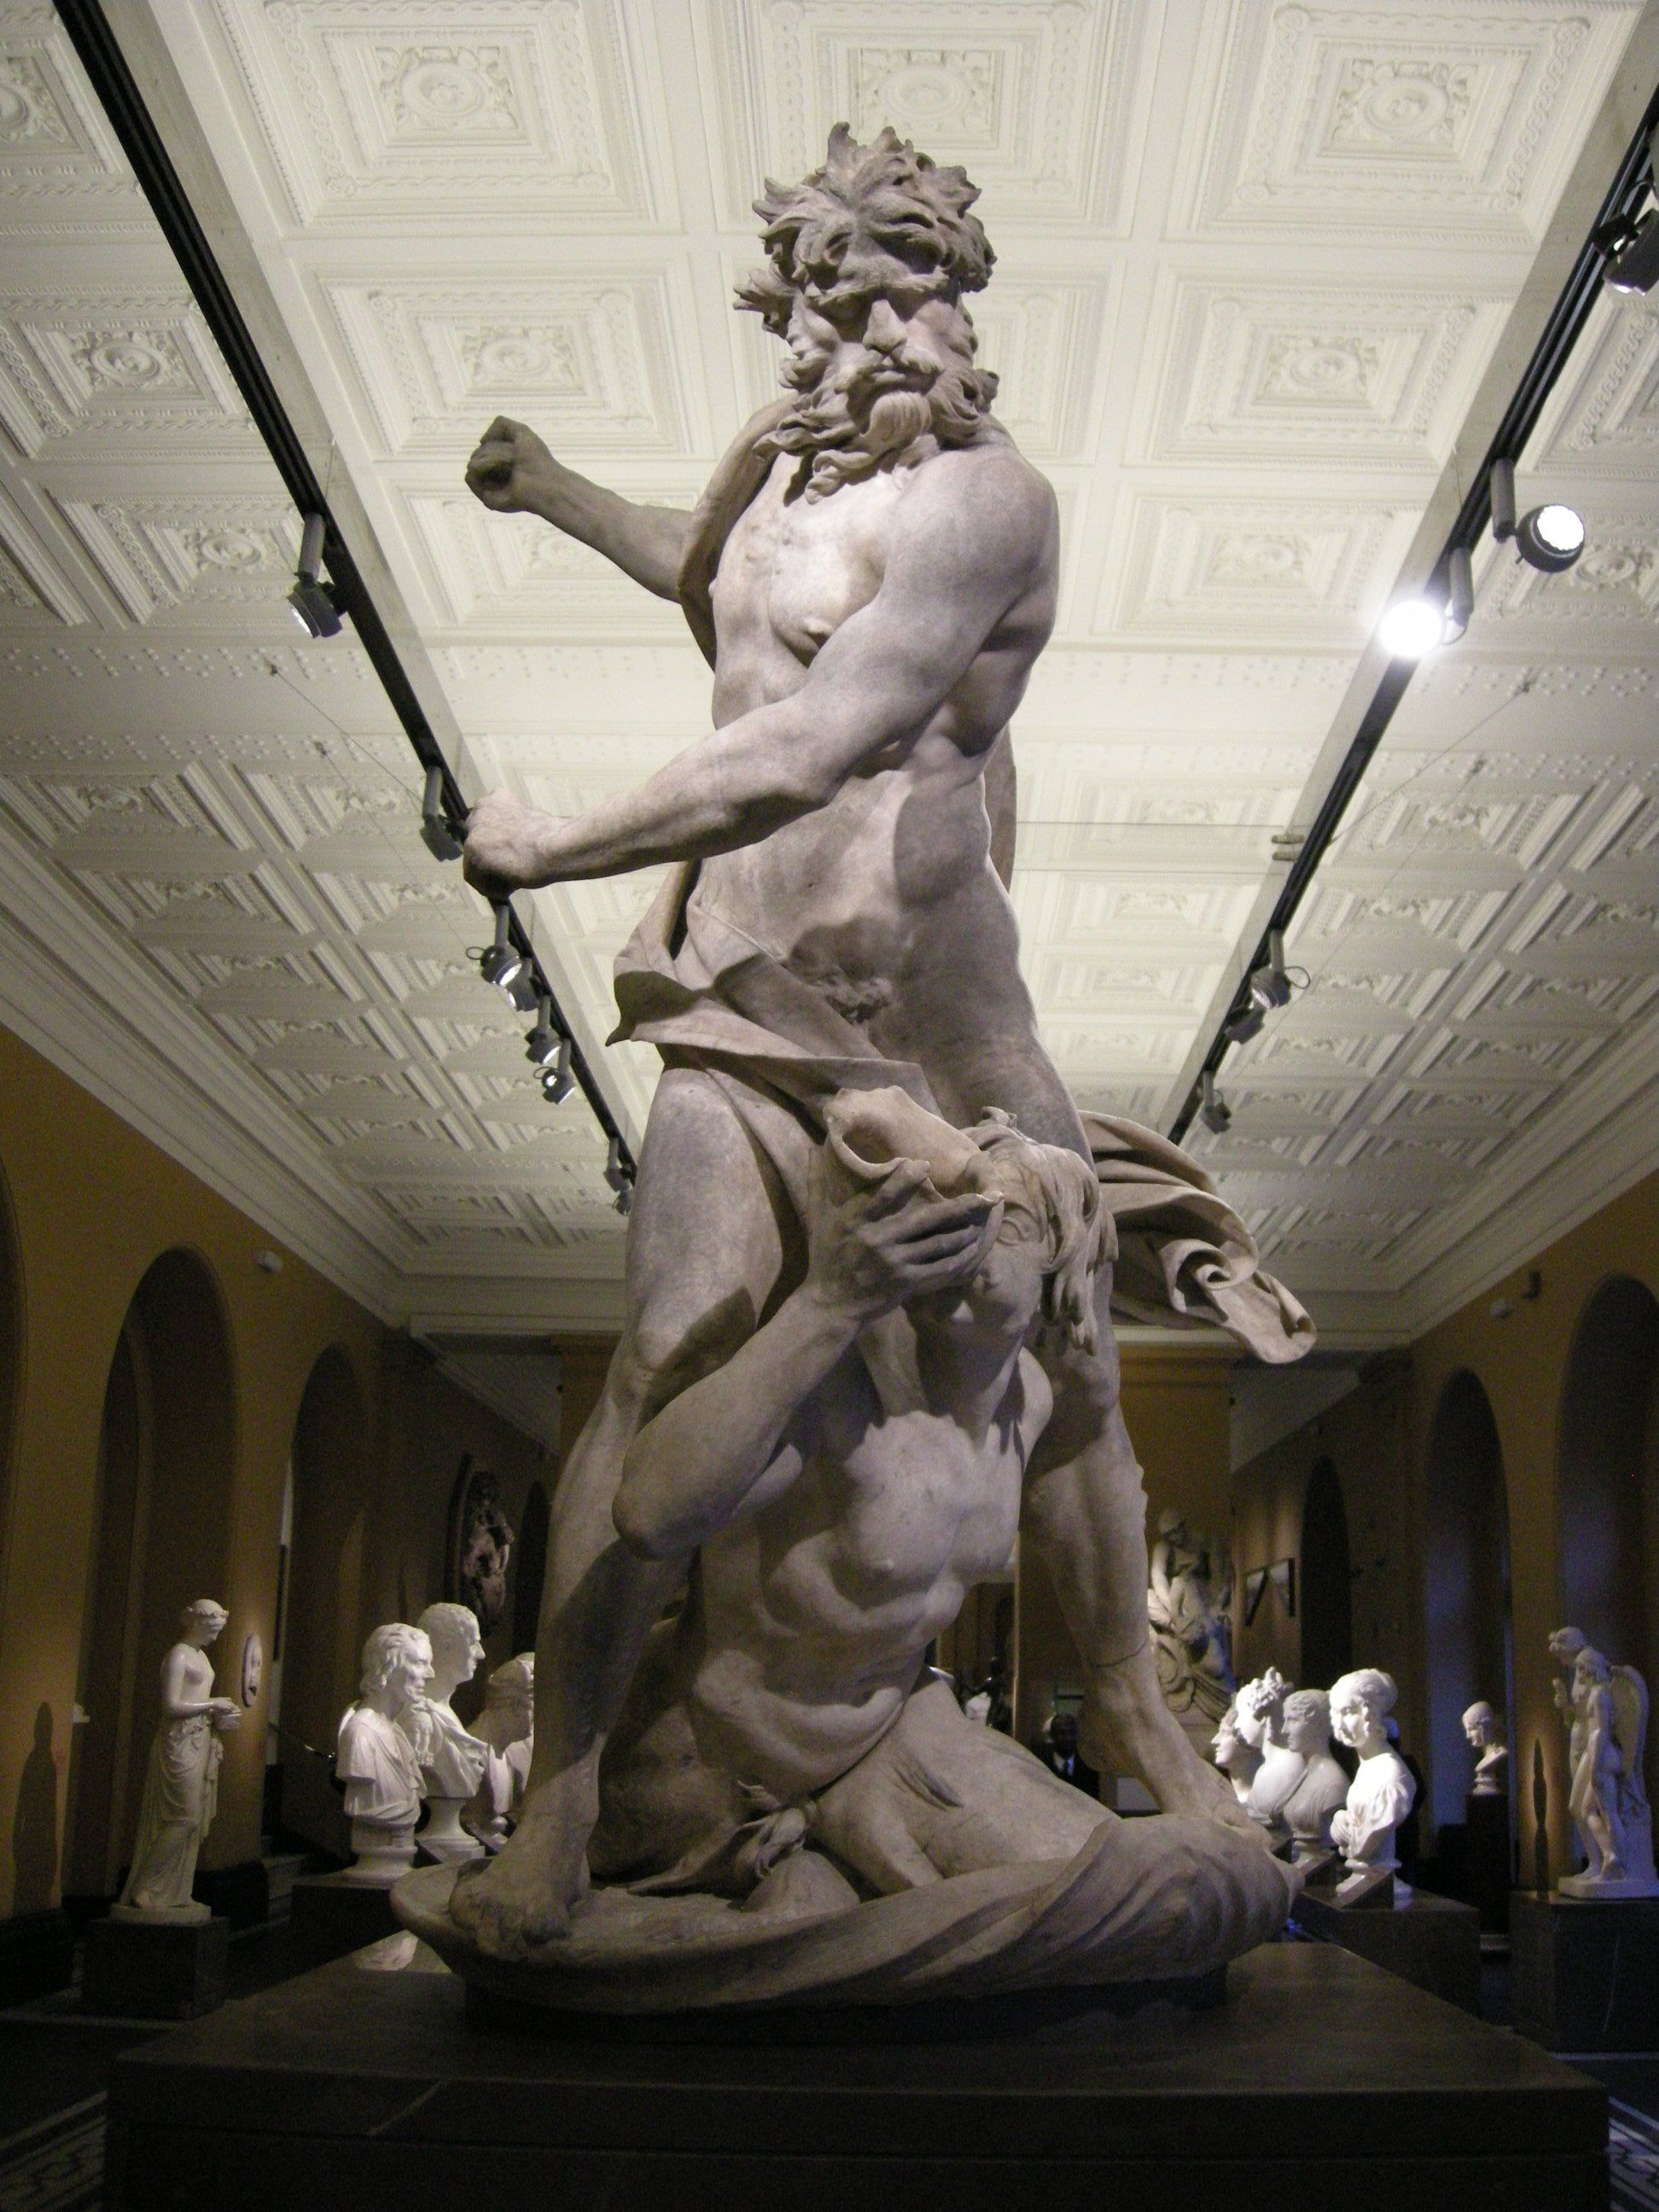 giovanni lorenzo bernini statue of neptune and neptune and triton is an early sculpture by the italian artist gian lorenzo bernini it is housed in the victoria and albert museum of london and was